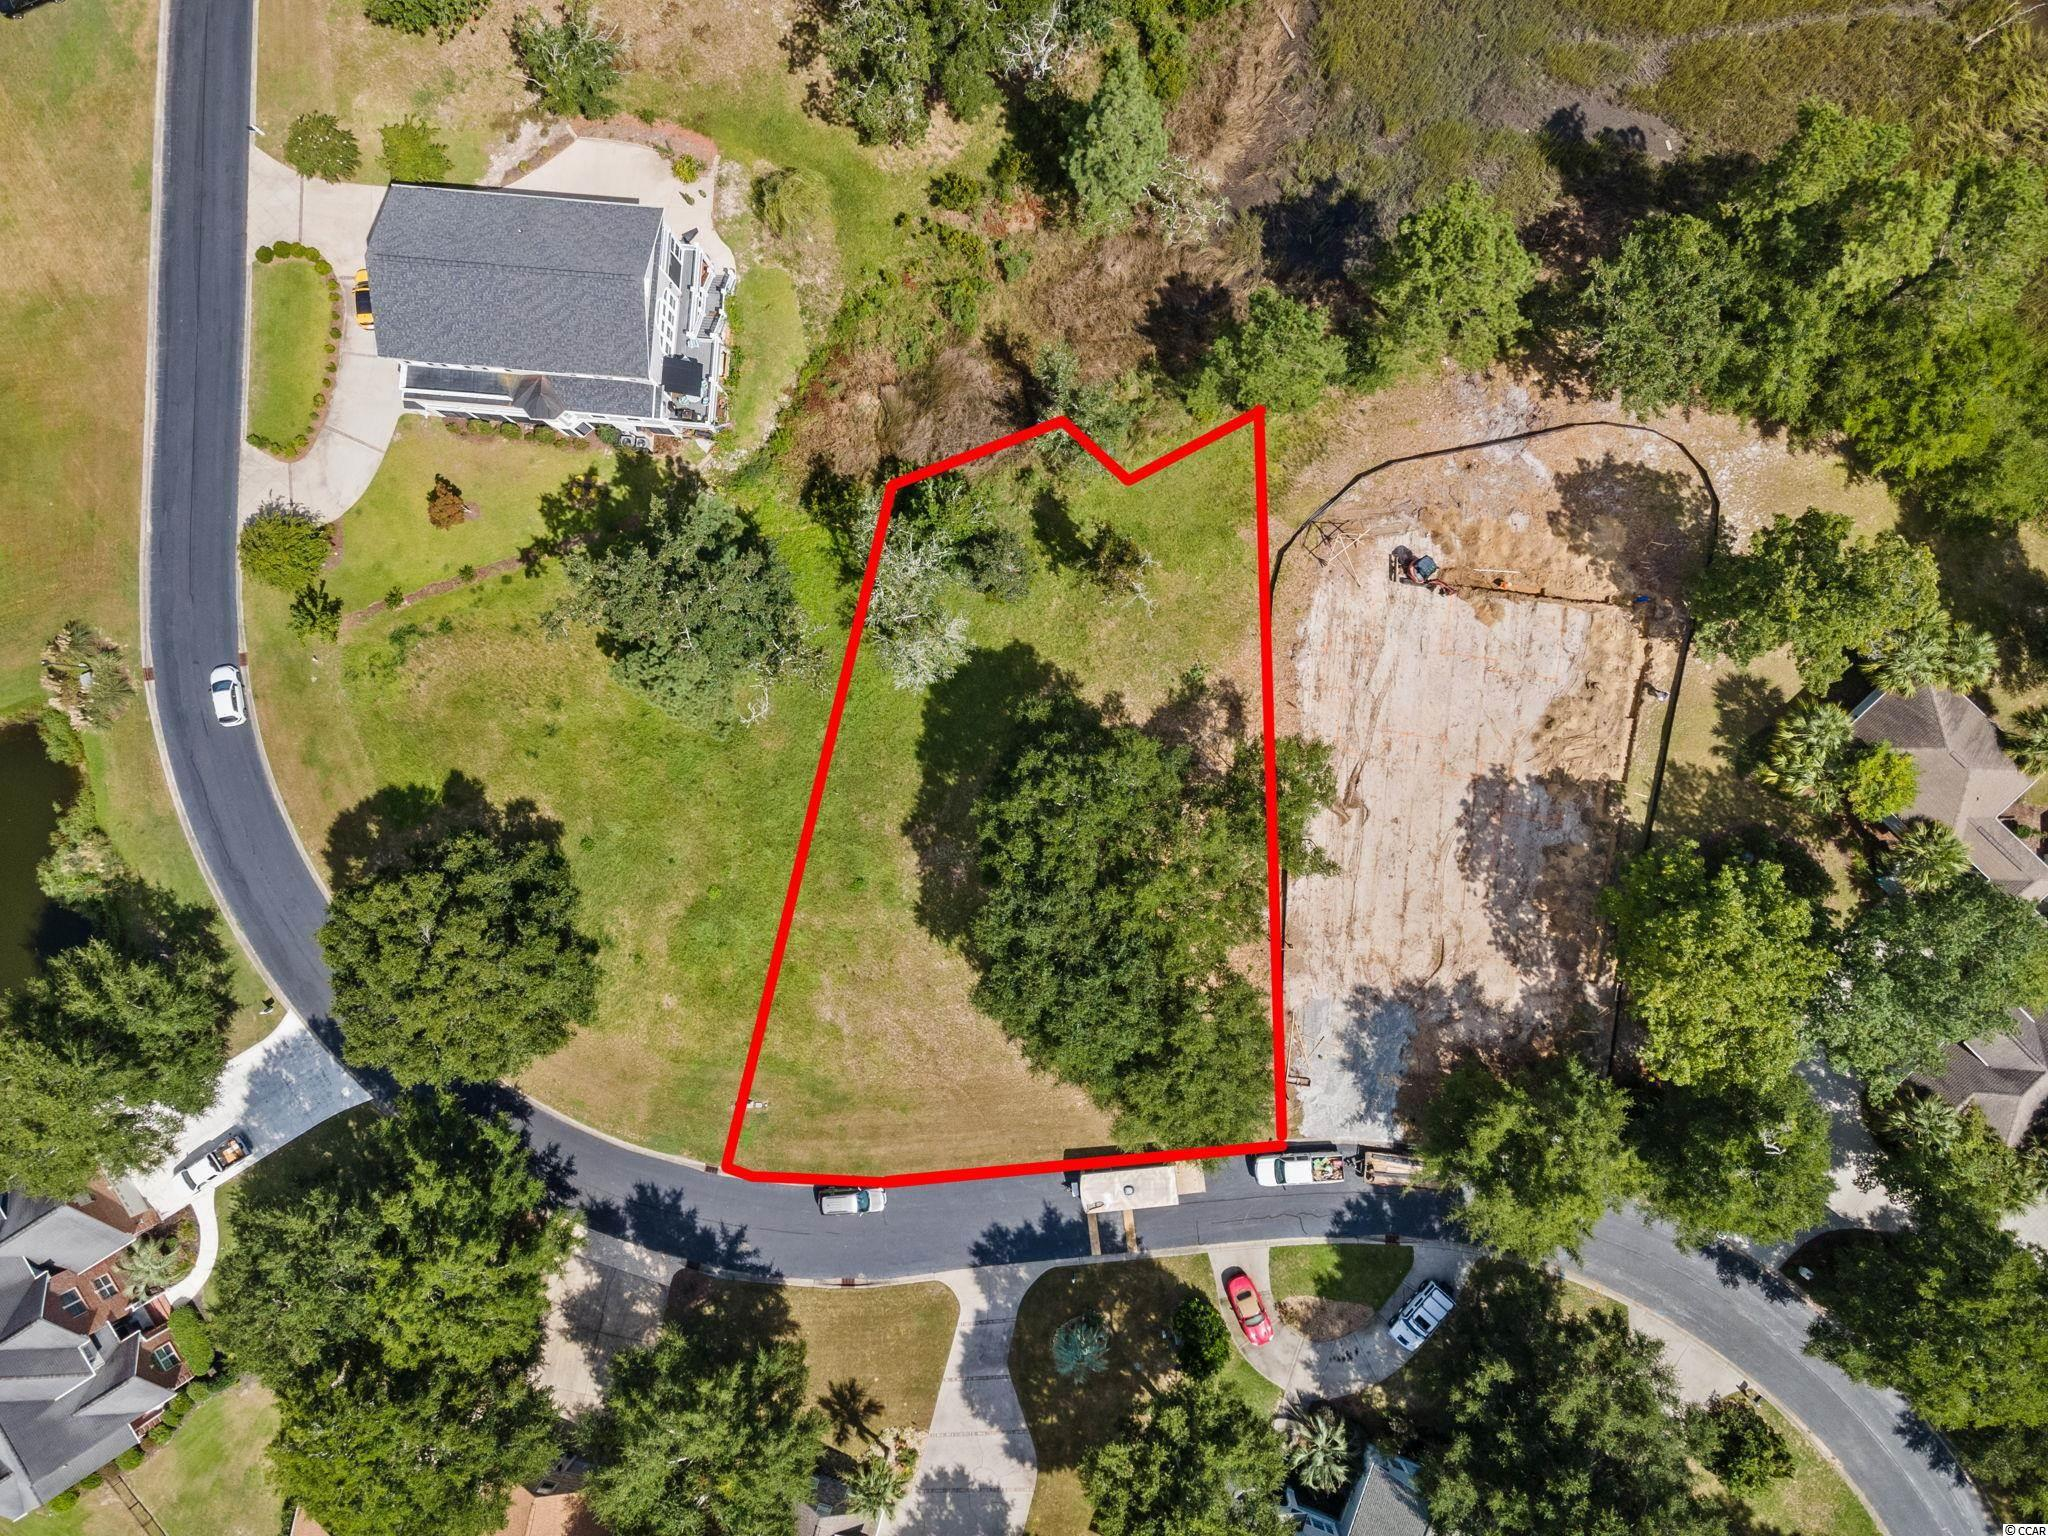 Are you looking for the perfect place to build your home? Check out this Marsh front lot in Big Landing Plantation! Big Landing Plantation is a private gated community that features community pool and its own private beach, pier and dock on the Intracoastal Waterway.